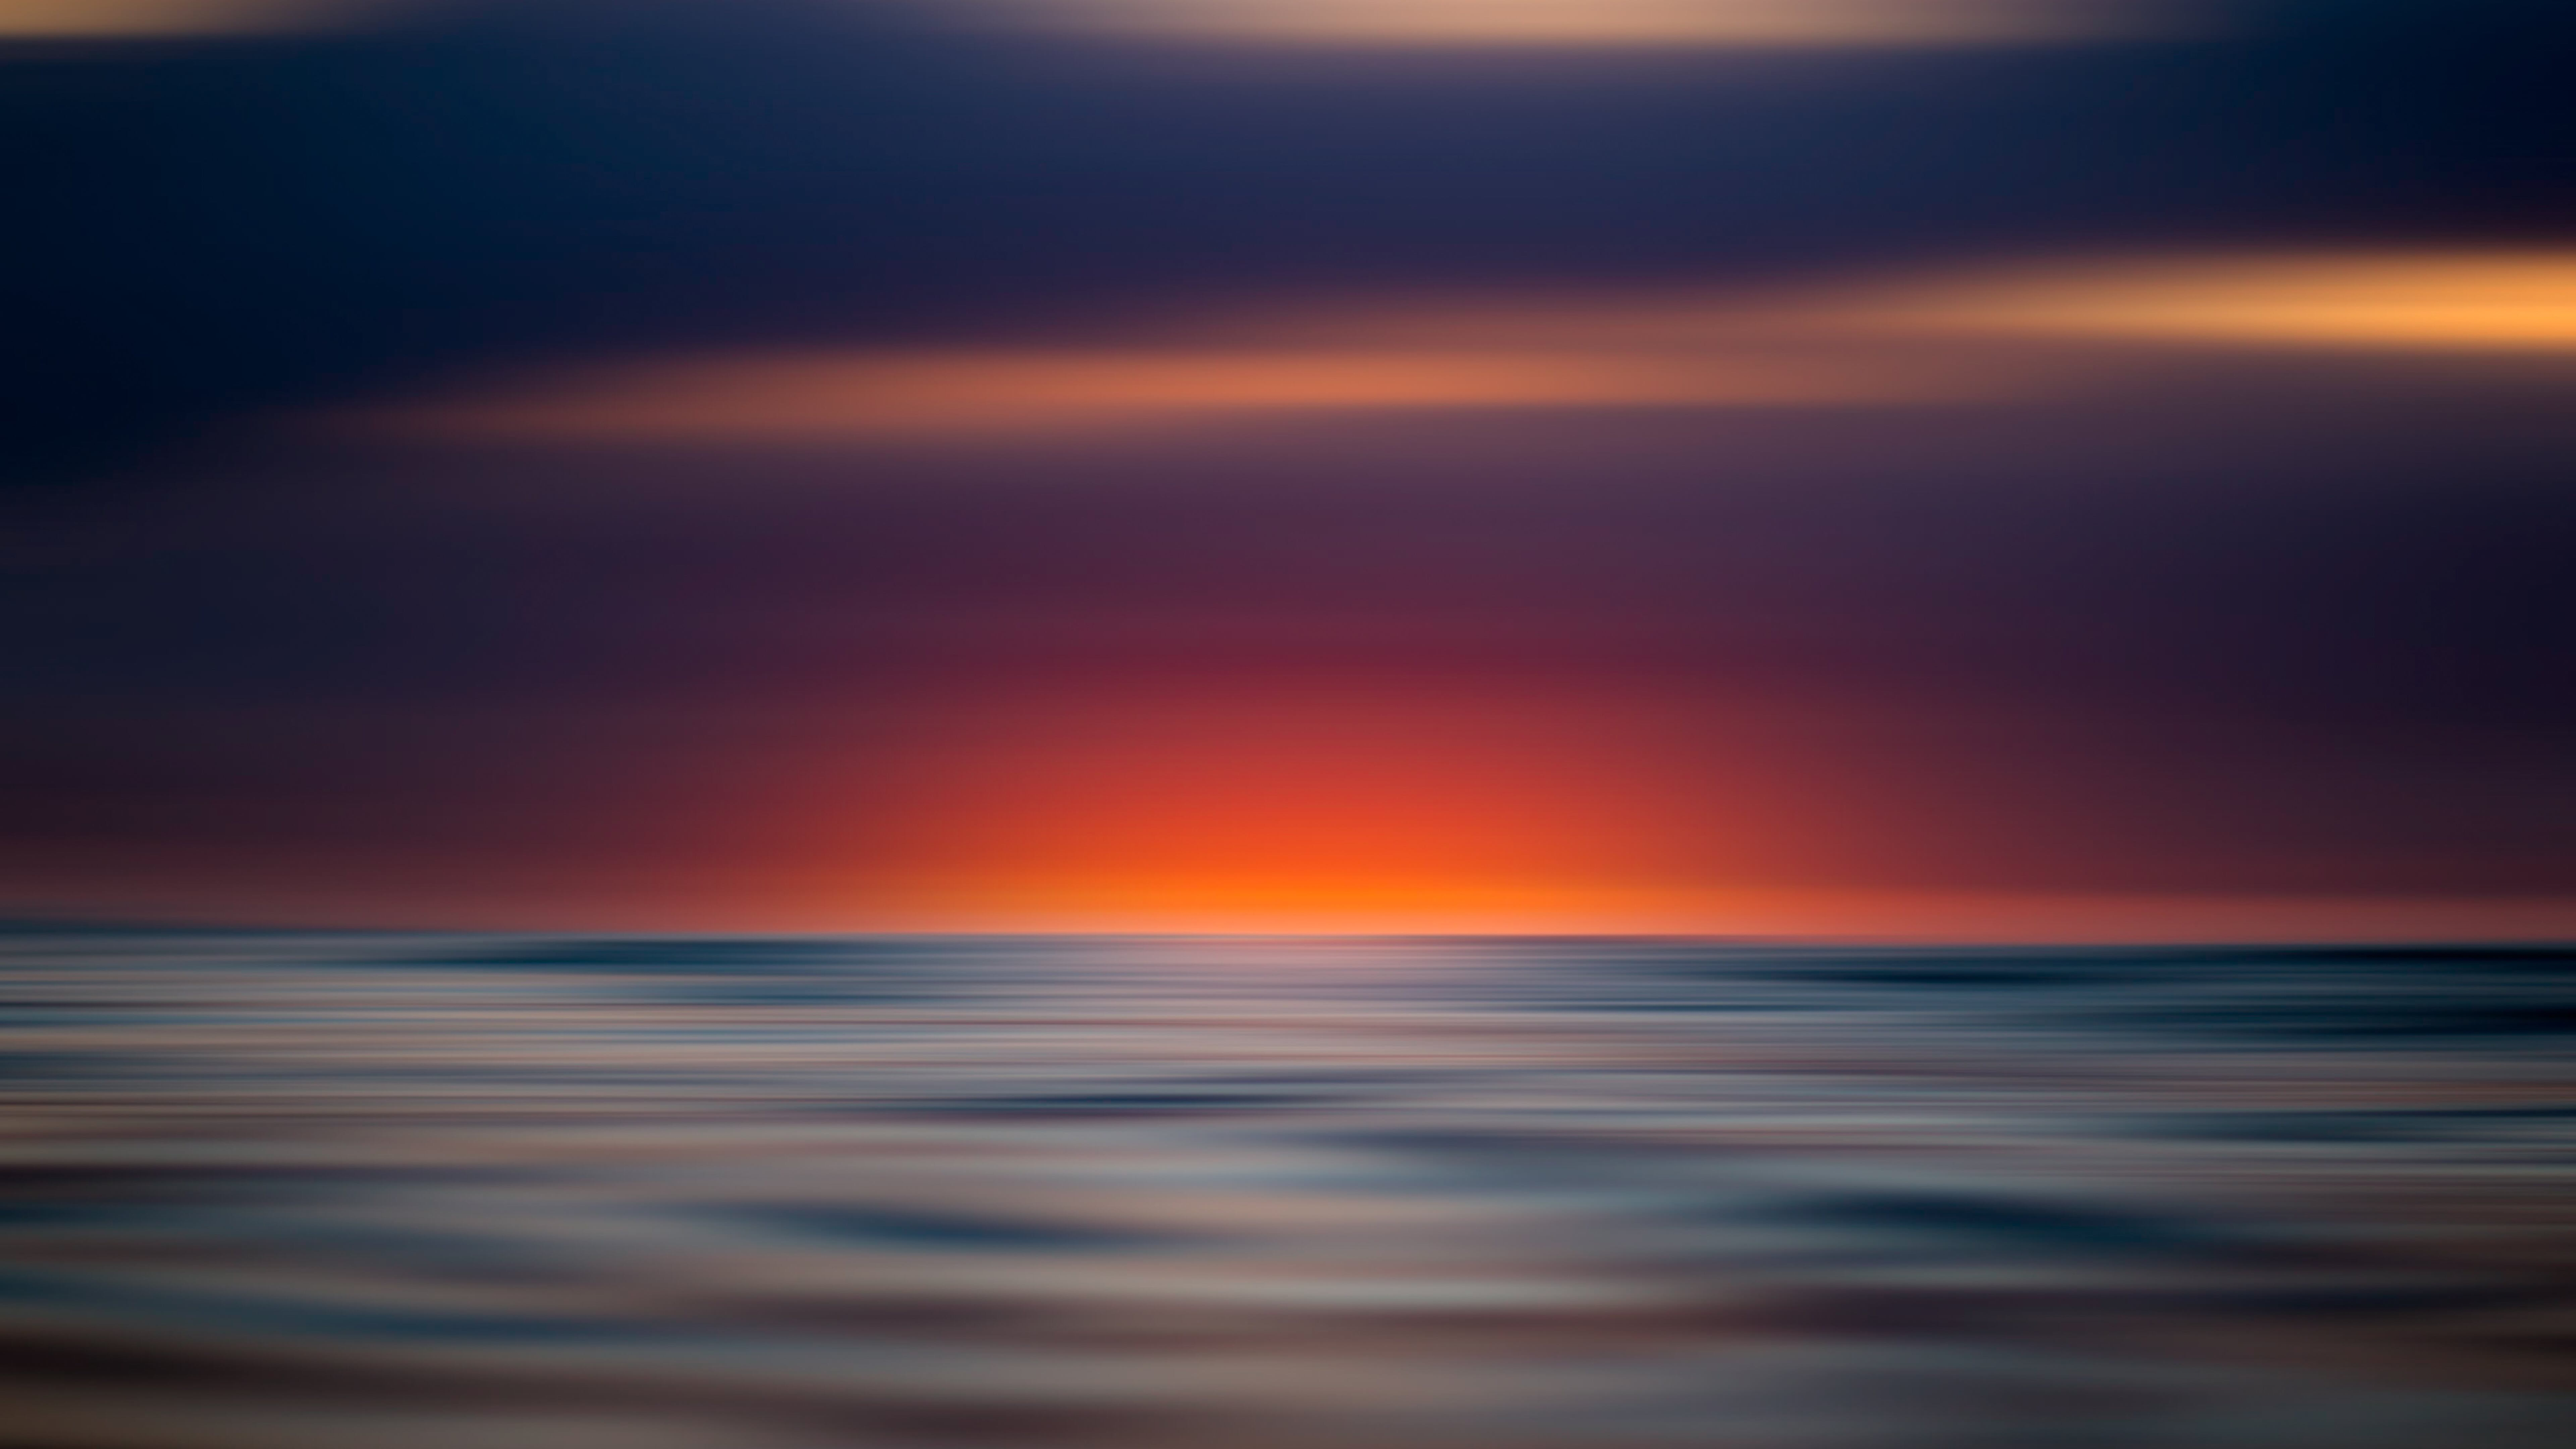 7680x4320 Sunset View Blur 8k 8k HD 4k Wallpapers, Images